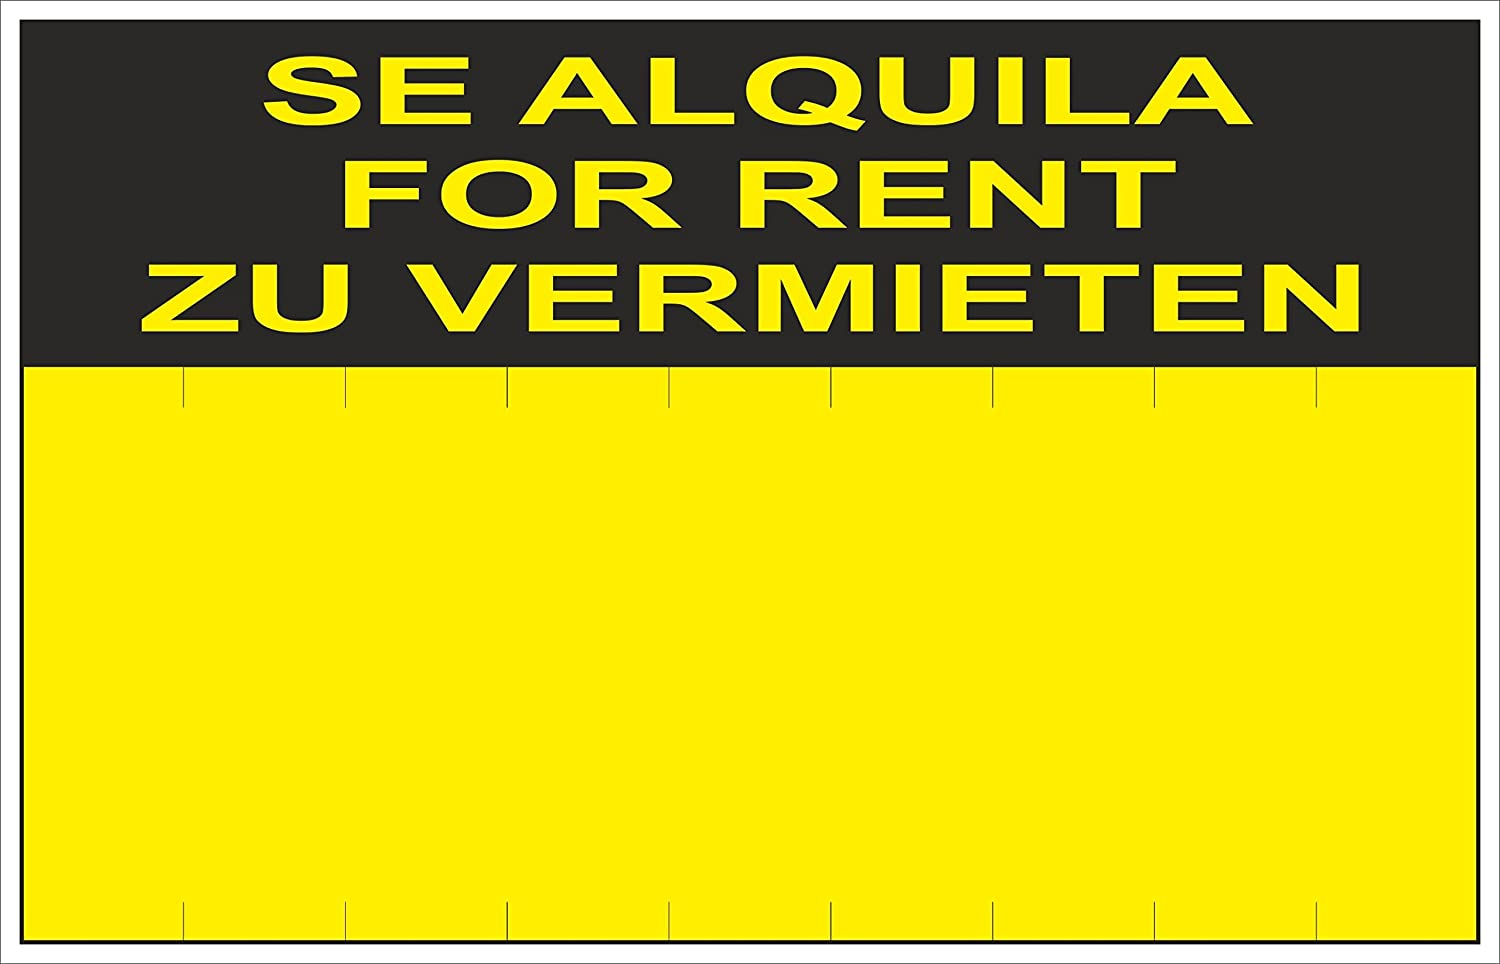 Normaluz RD51406 - Cartel Se Alquila For Rent Zu Vermieten PVC Glasspack 0,4 mm 45x70 cm